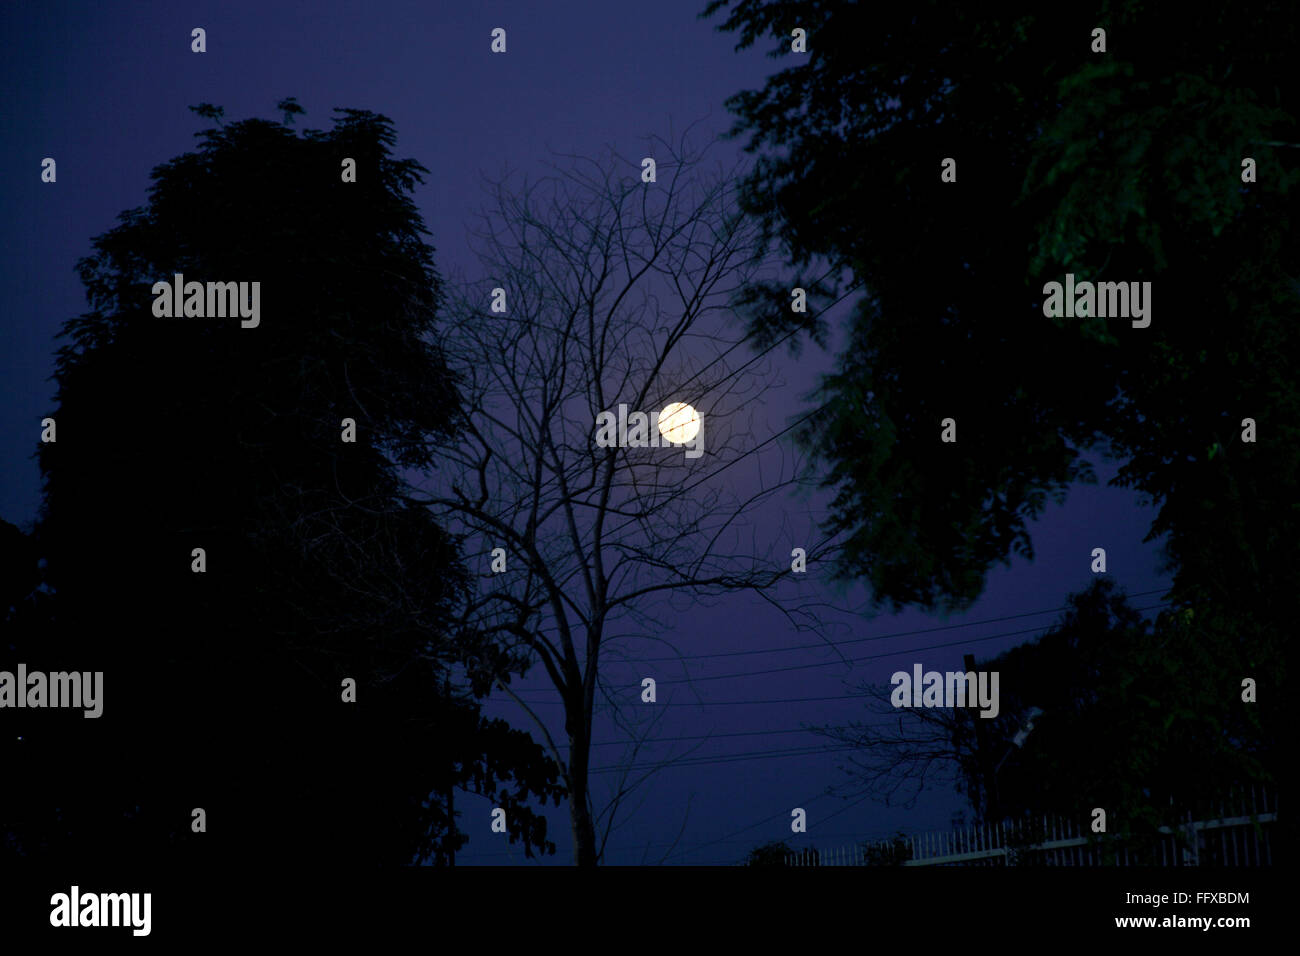 Nightscape moon light full moon behind trees - Stock Image